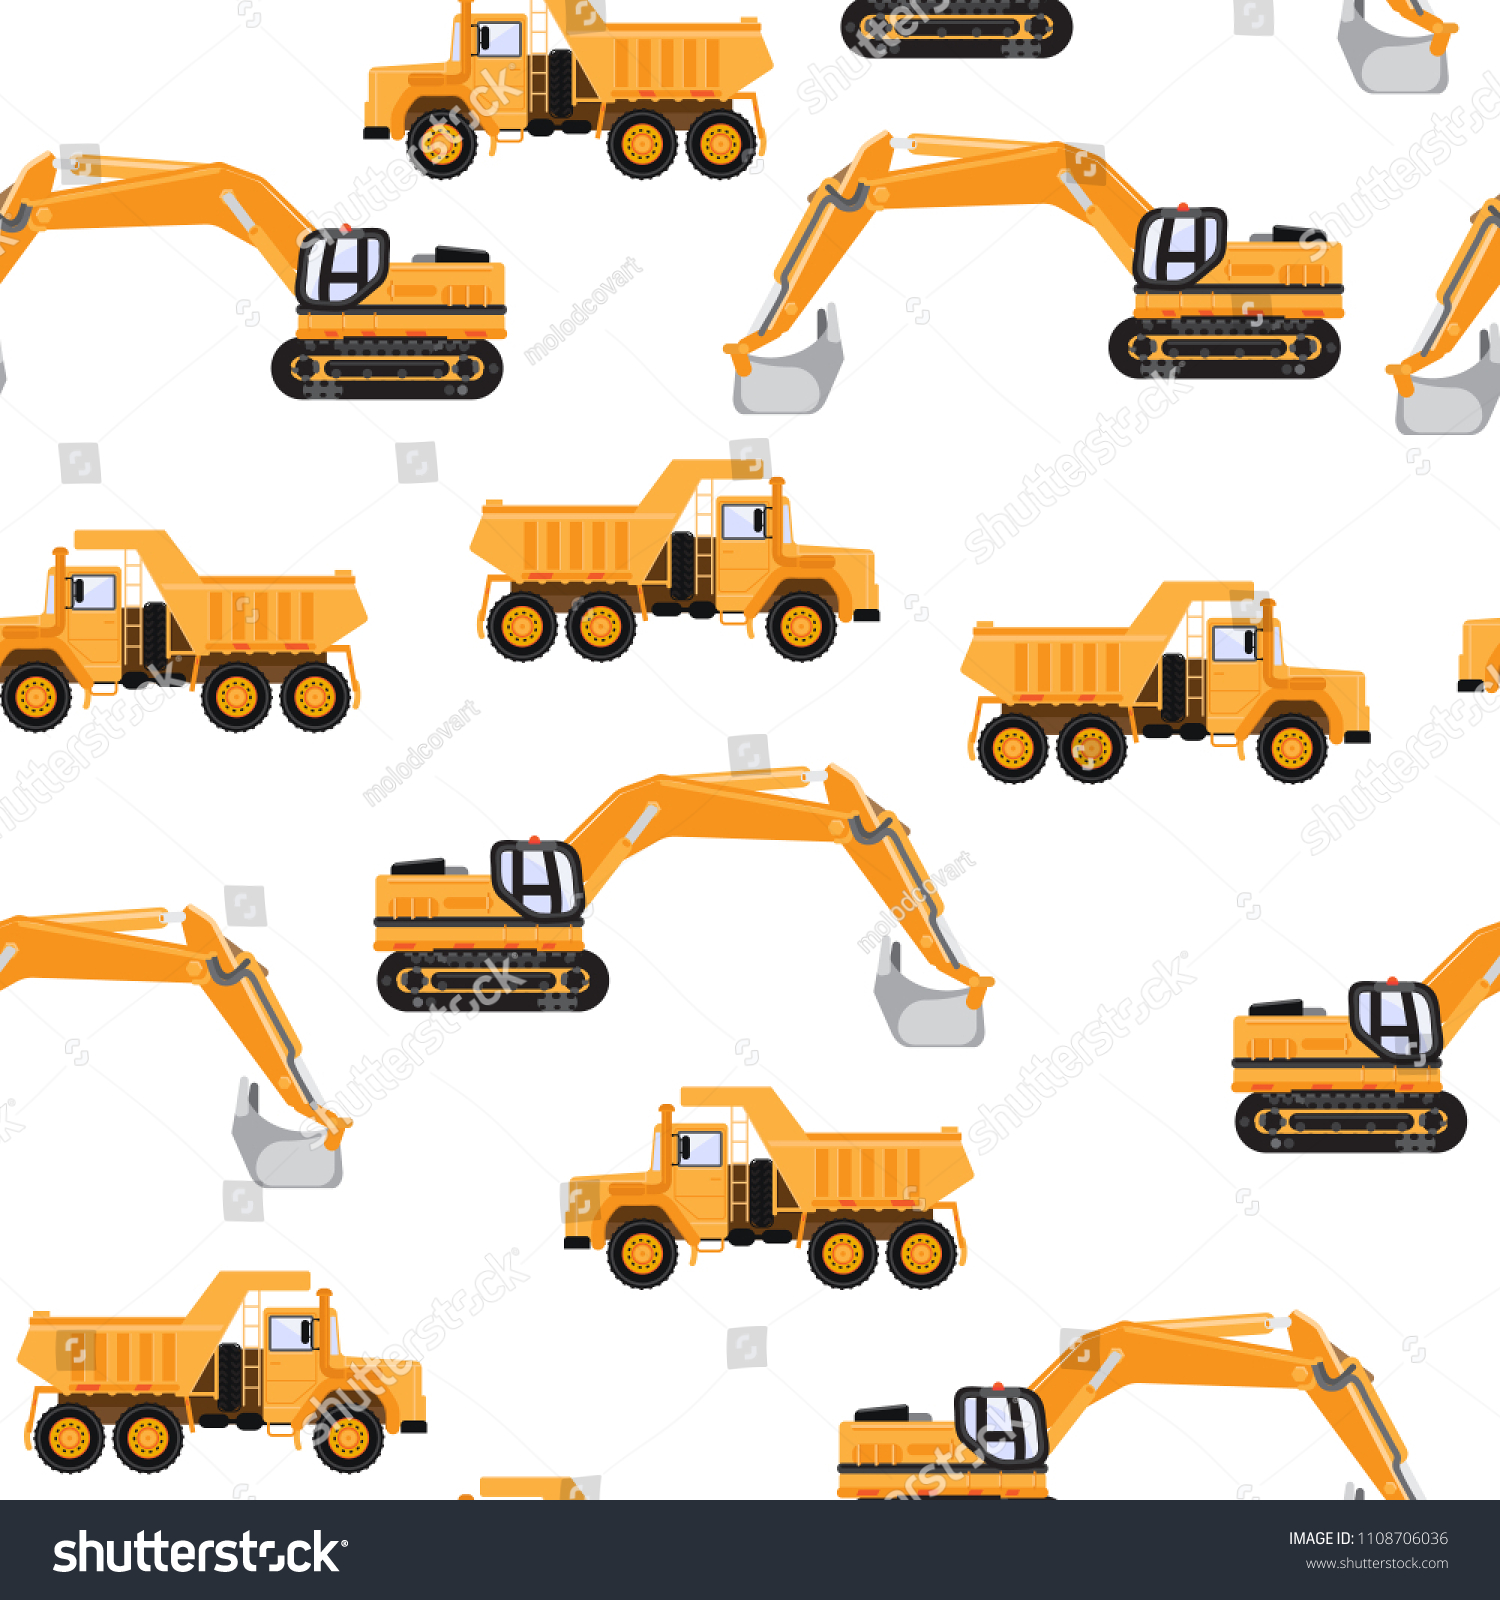 Background Construction Equipment Industrial Cars Stock